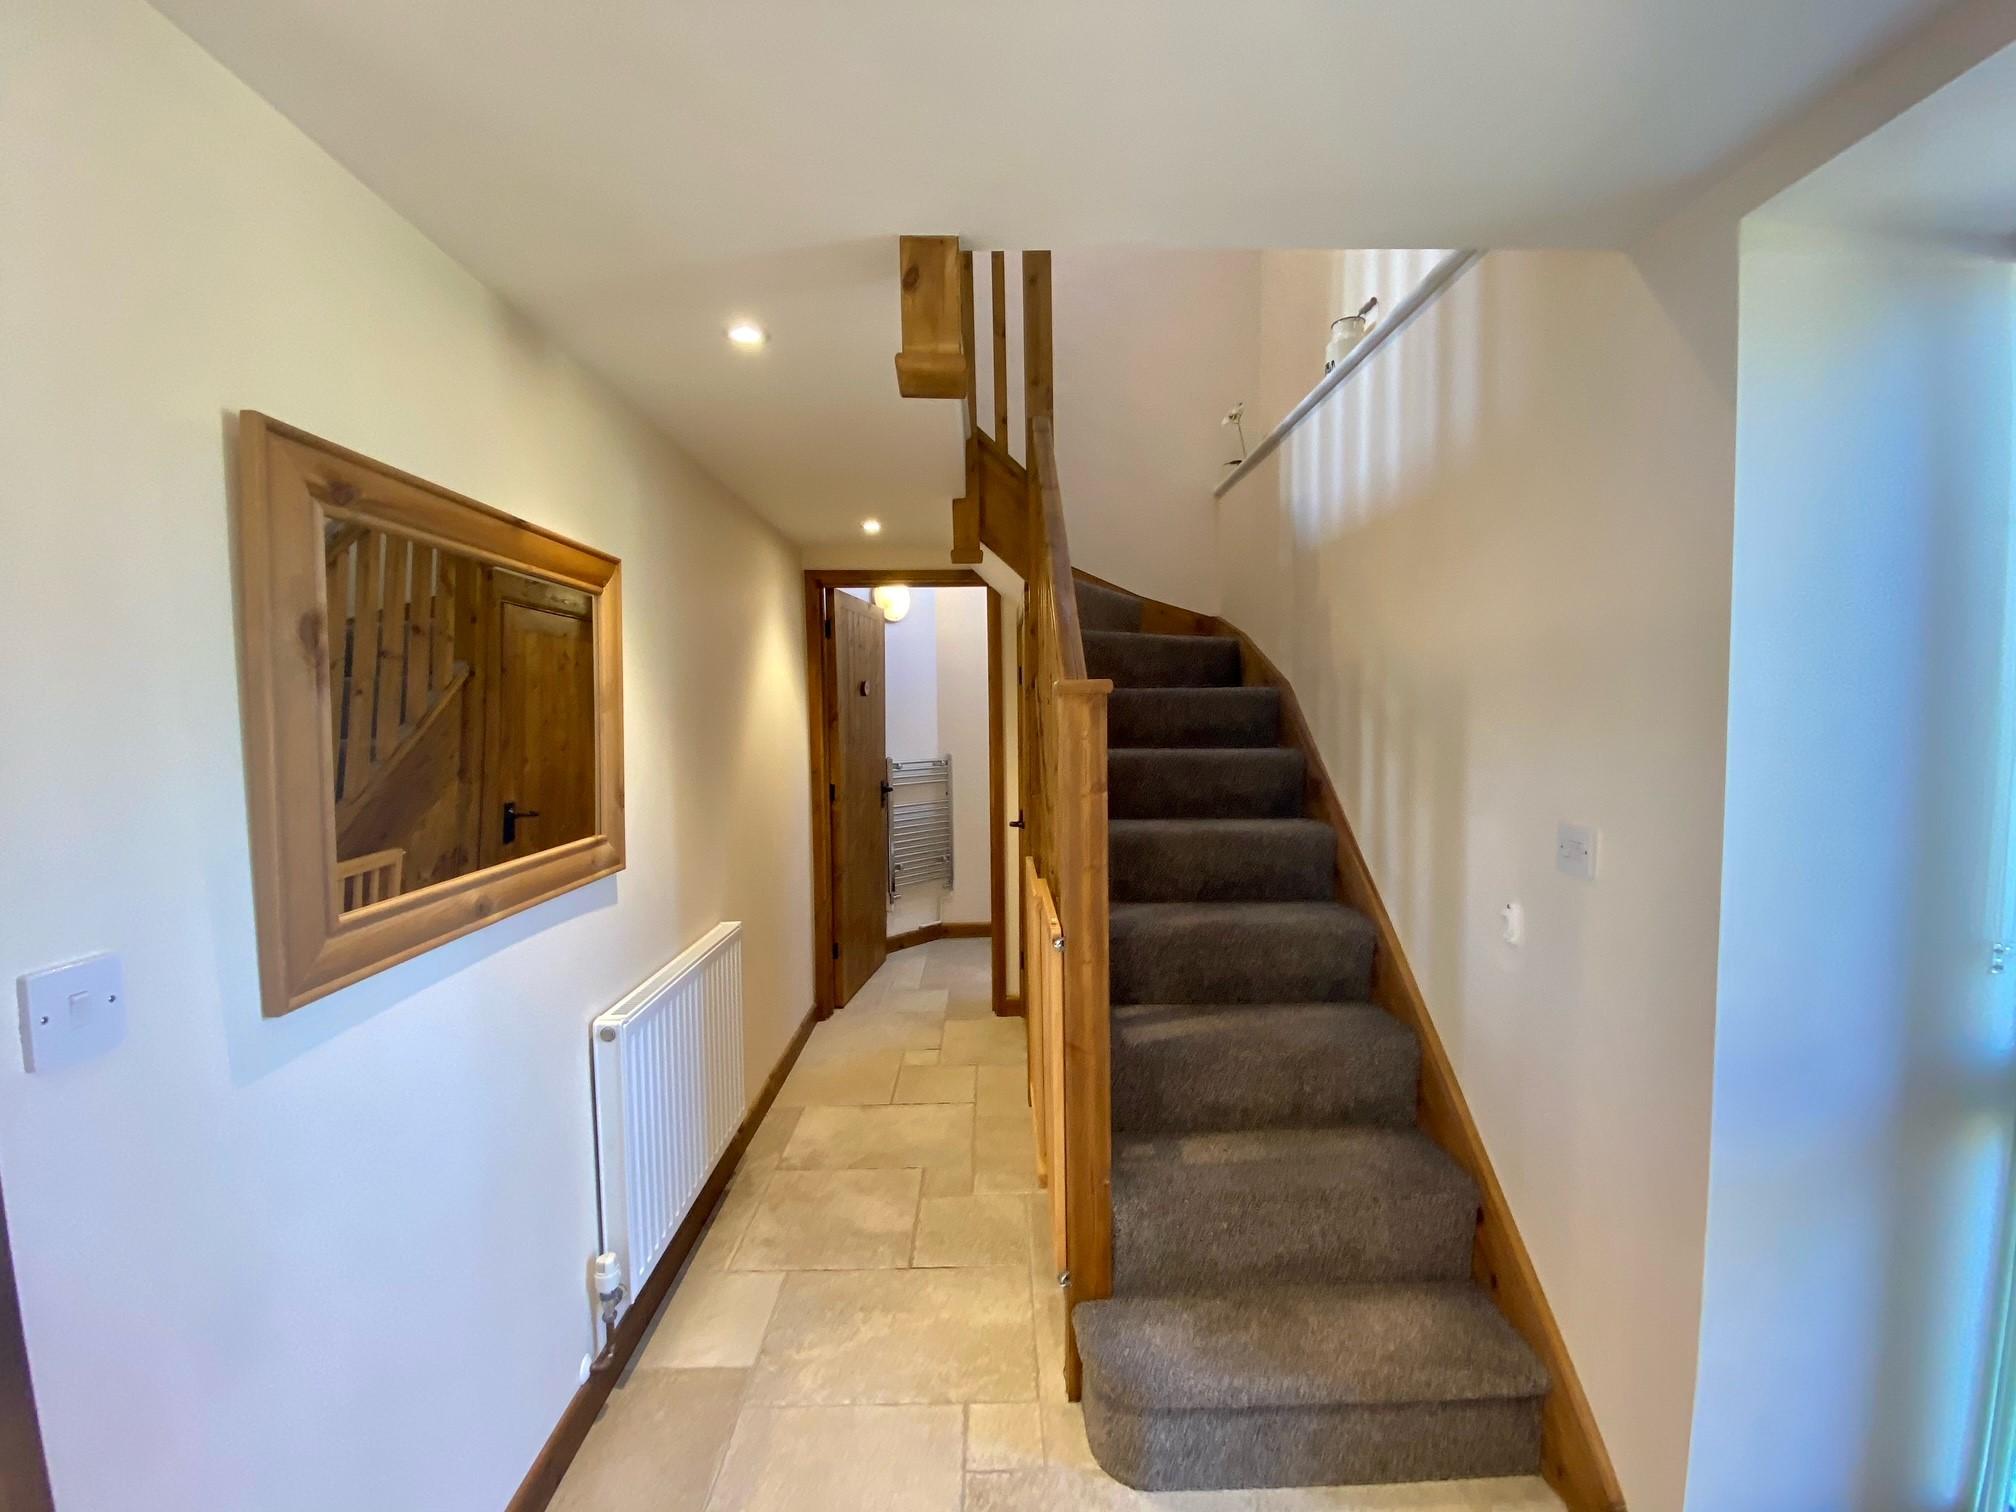 Guernsey Stairs